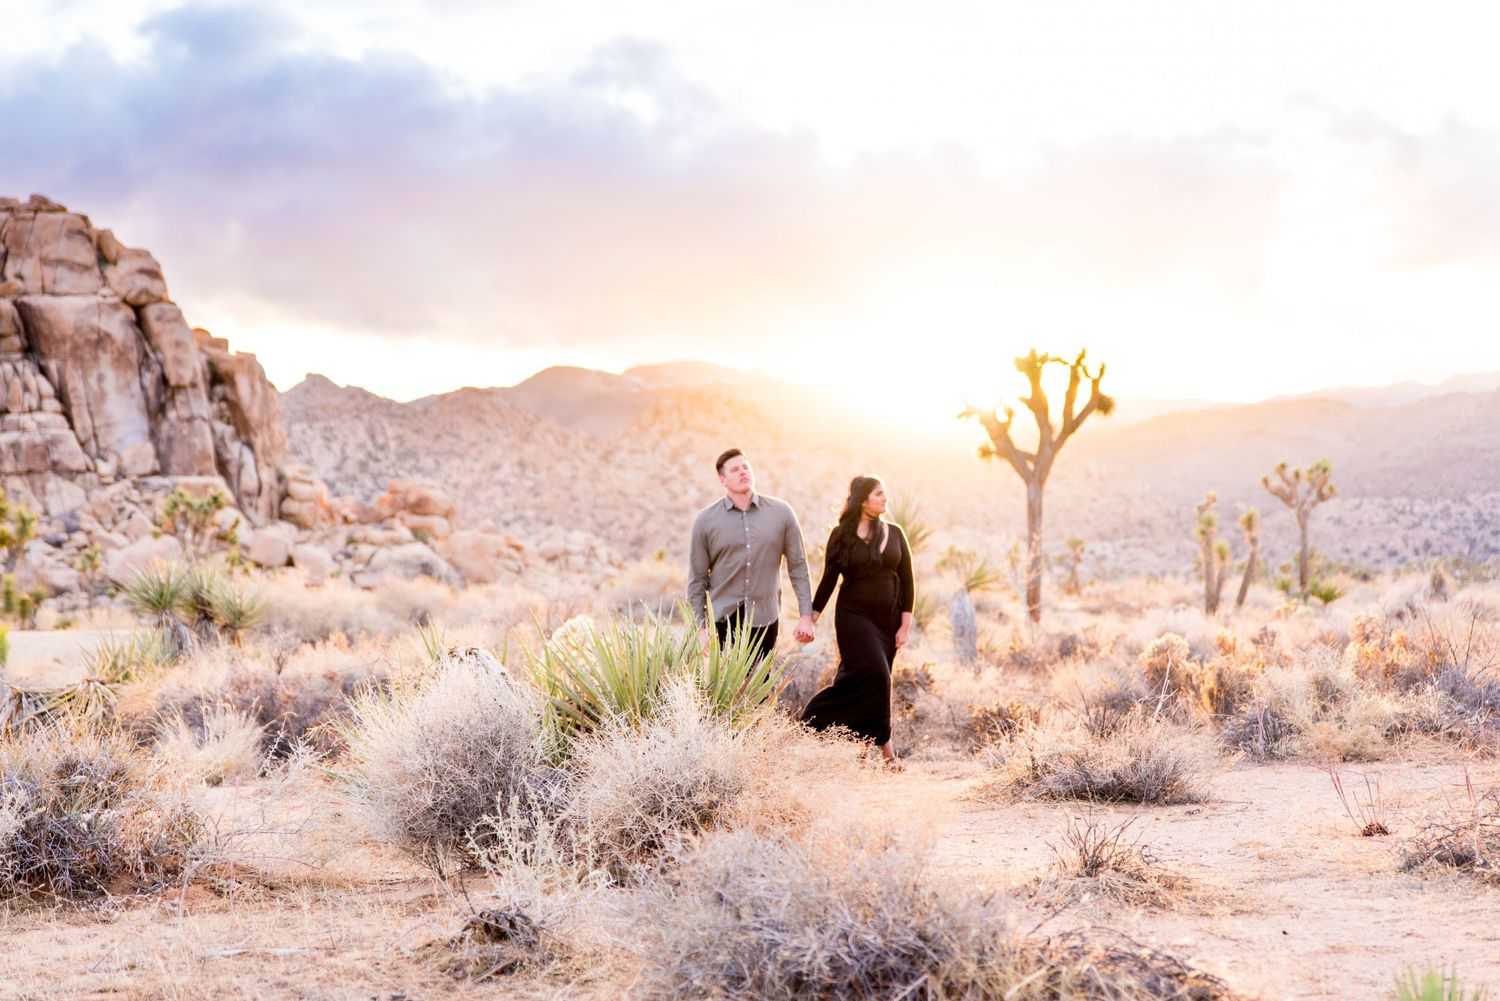 woman in black dress holds man's hand and leads him through Joshua Tree National Park at sunset for engagement pictures